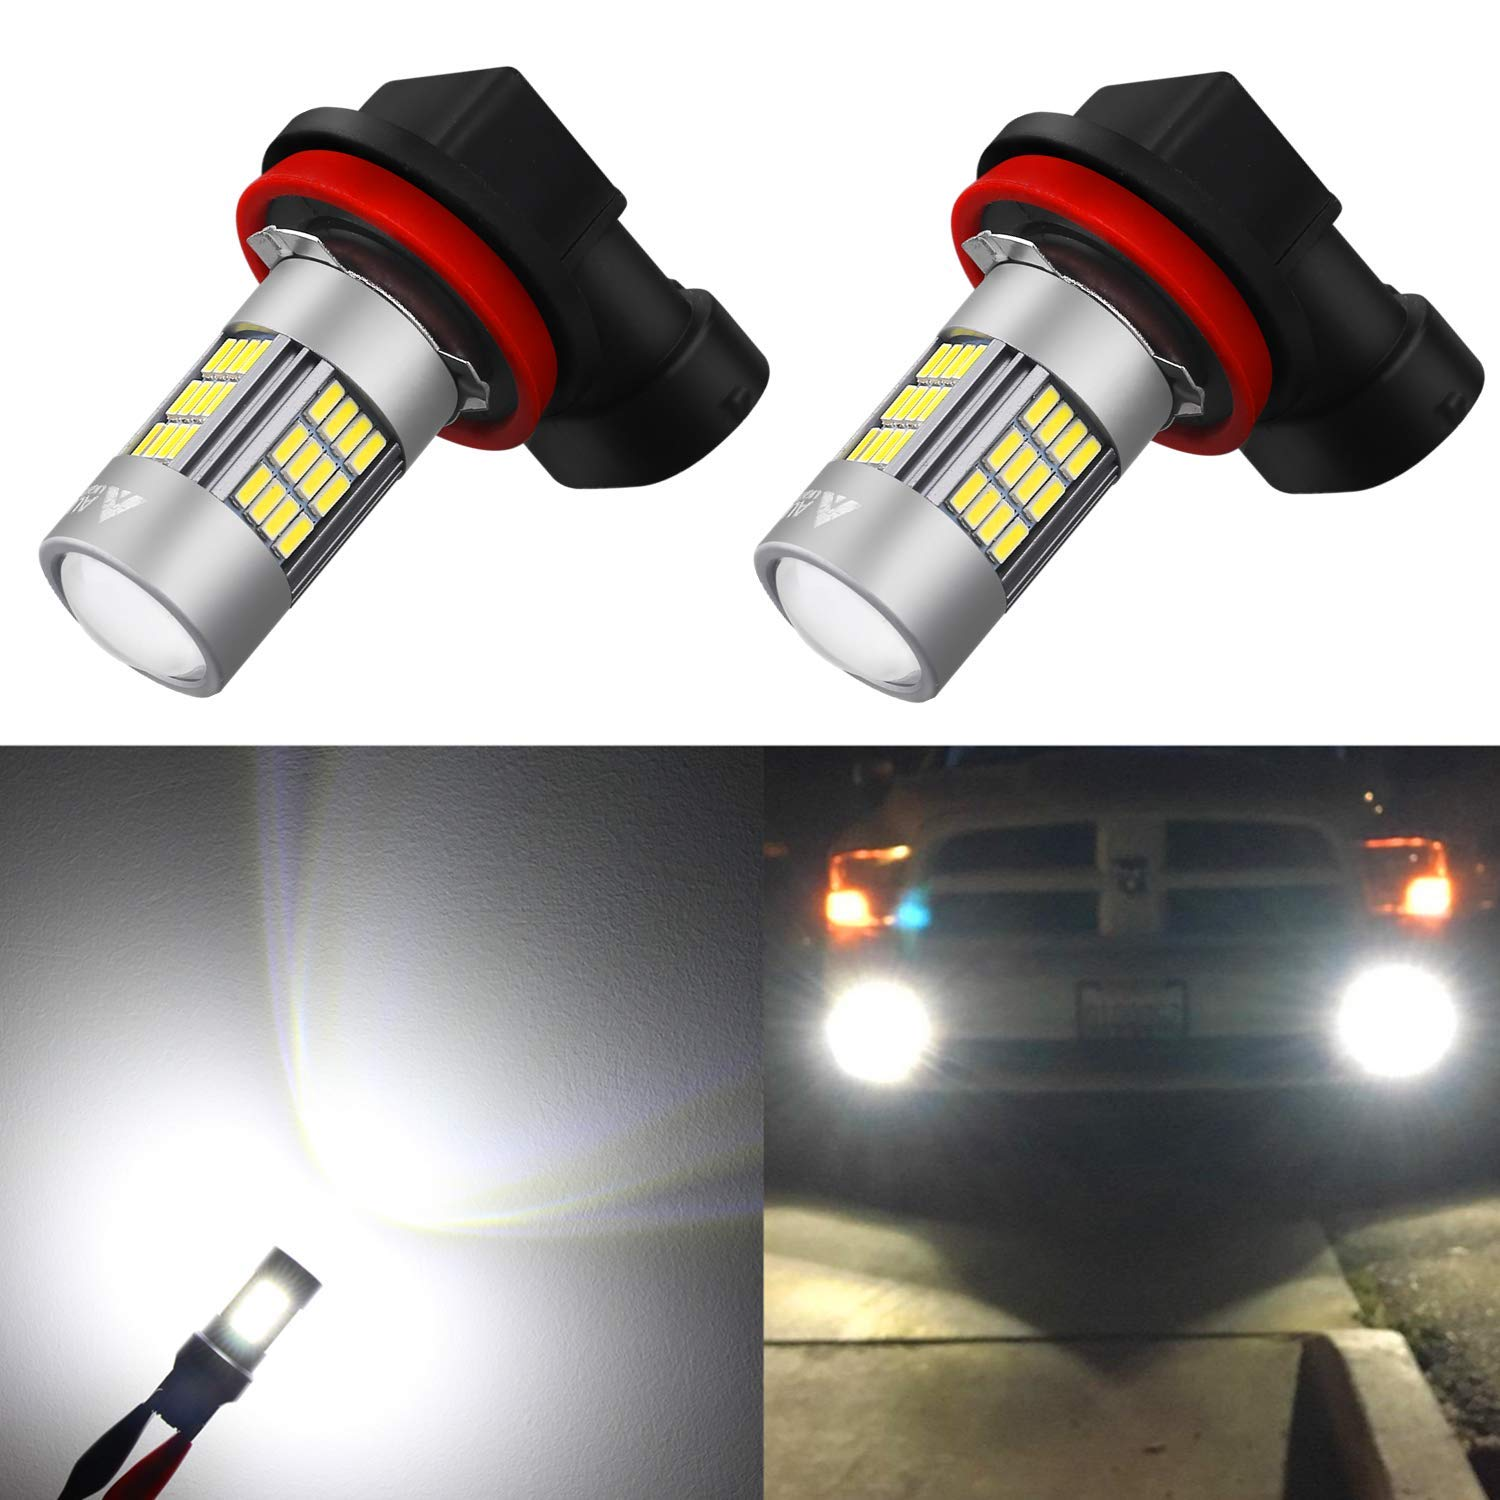 Alla Lighting Super Bright H8 H16 H11 LED Fog Lights Bulbs 4014 54-SMD LED H11 H8 Fog Light Bulb 6000K Xenon White H16 H8 H11 LED Bulbs for Cars Trucks Fog Lights Replacement (Set of 2)